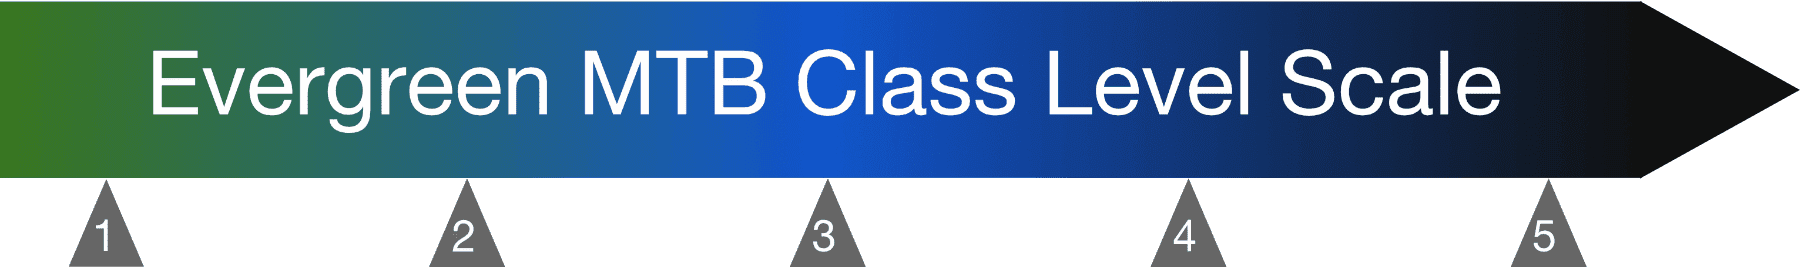 EvergreenMTBClassLevelScale